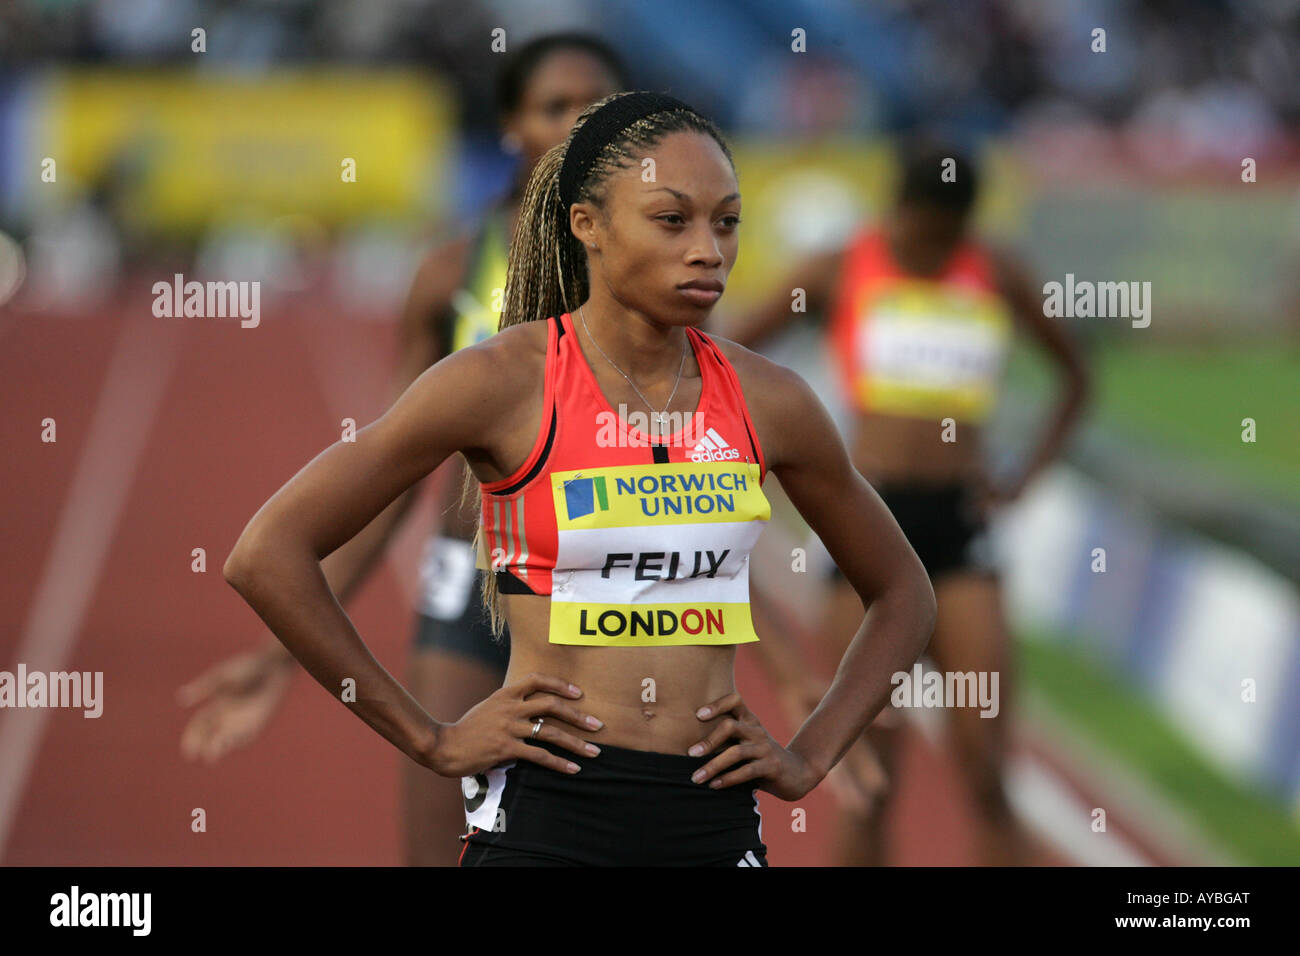 USA athlete Allyson Felix before the start of the 200m at the Crystal Palace Grand Prix 2007 - Stock Image